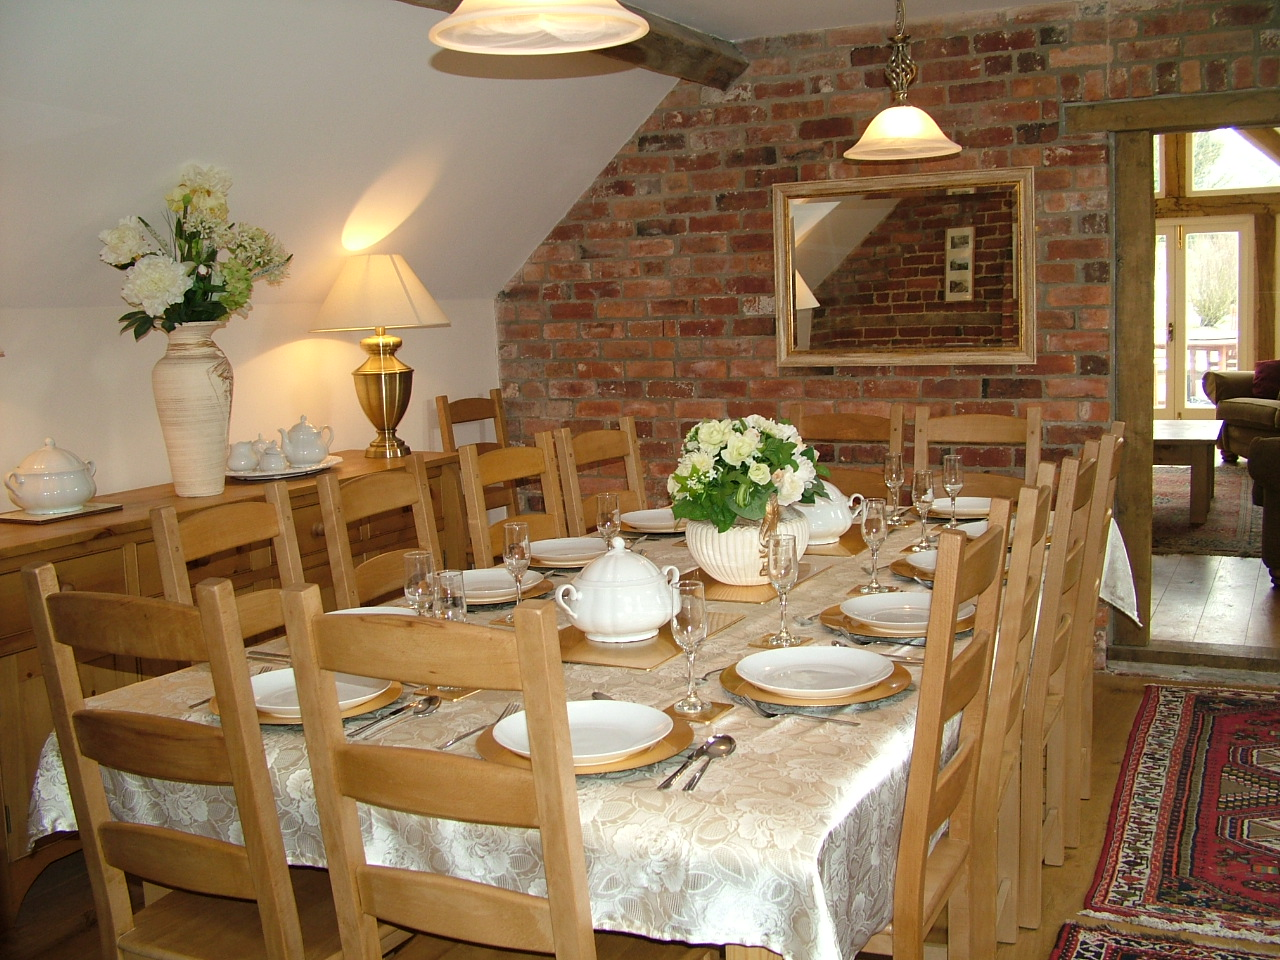 Self Catering Holiday Cottages Derbyshire